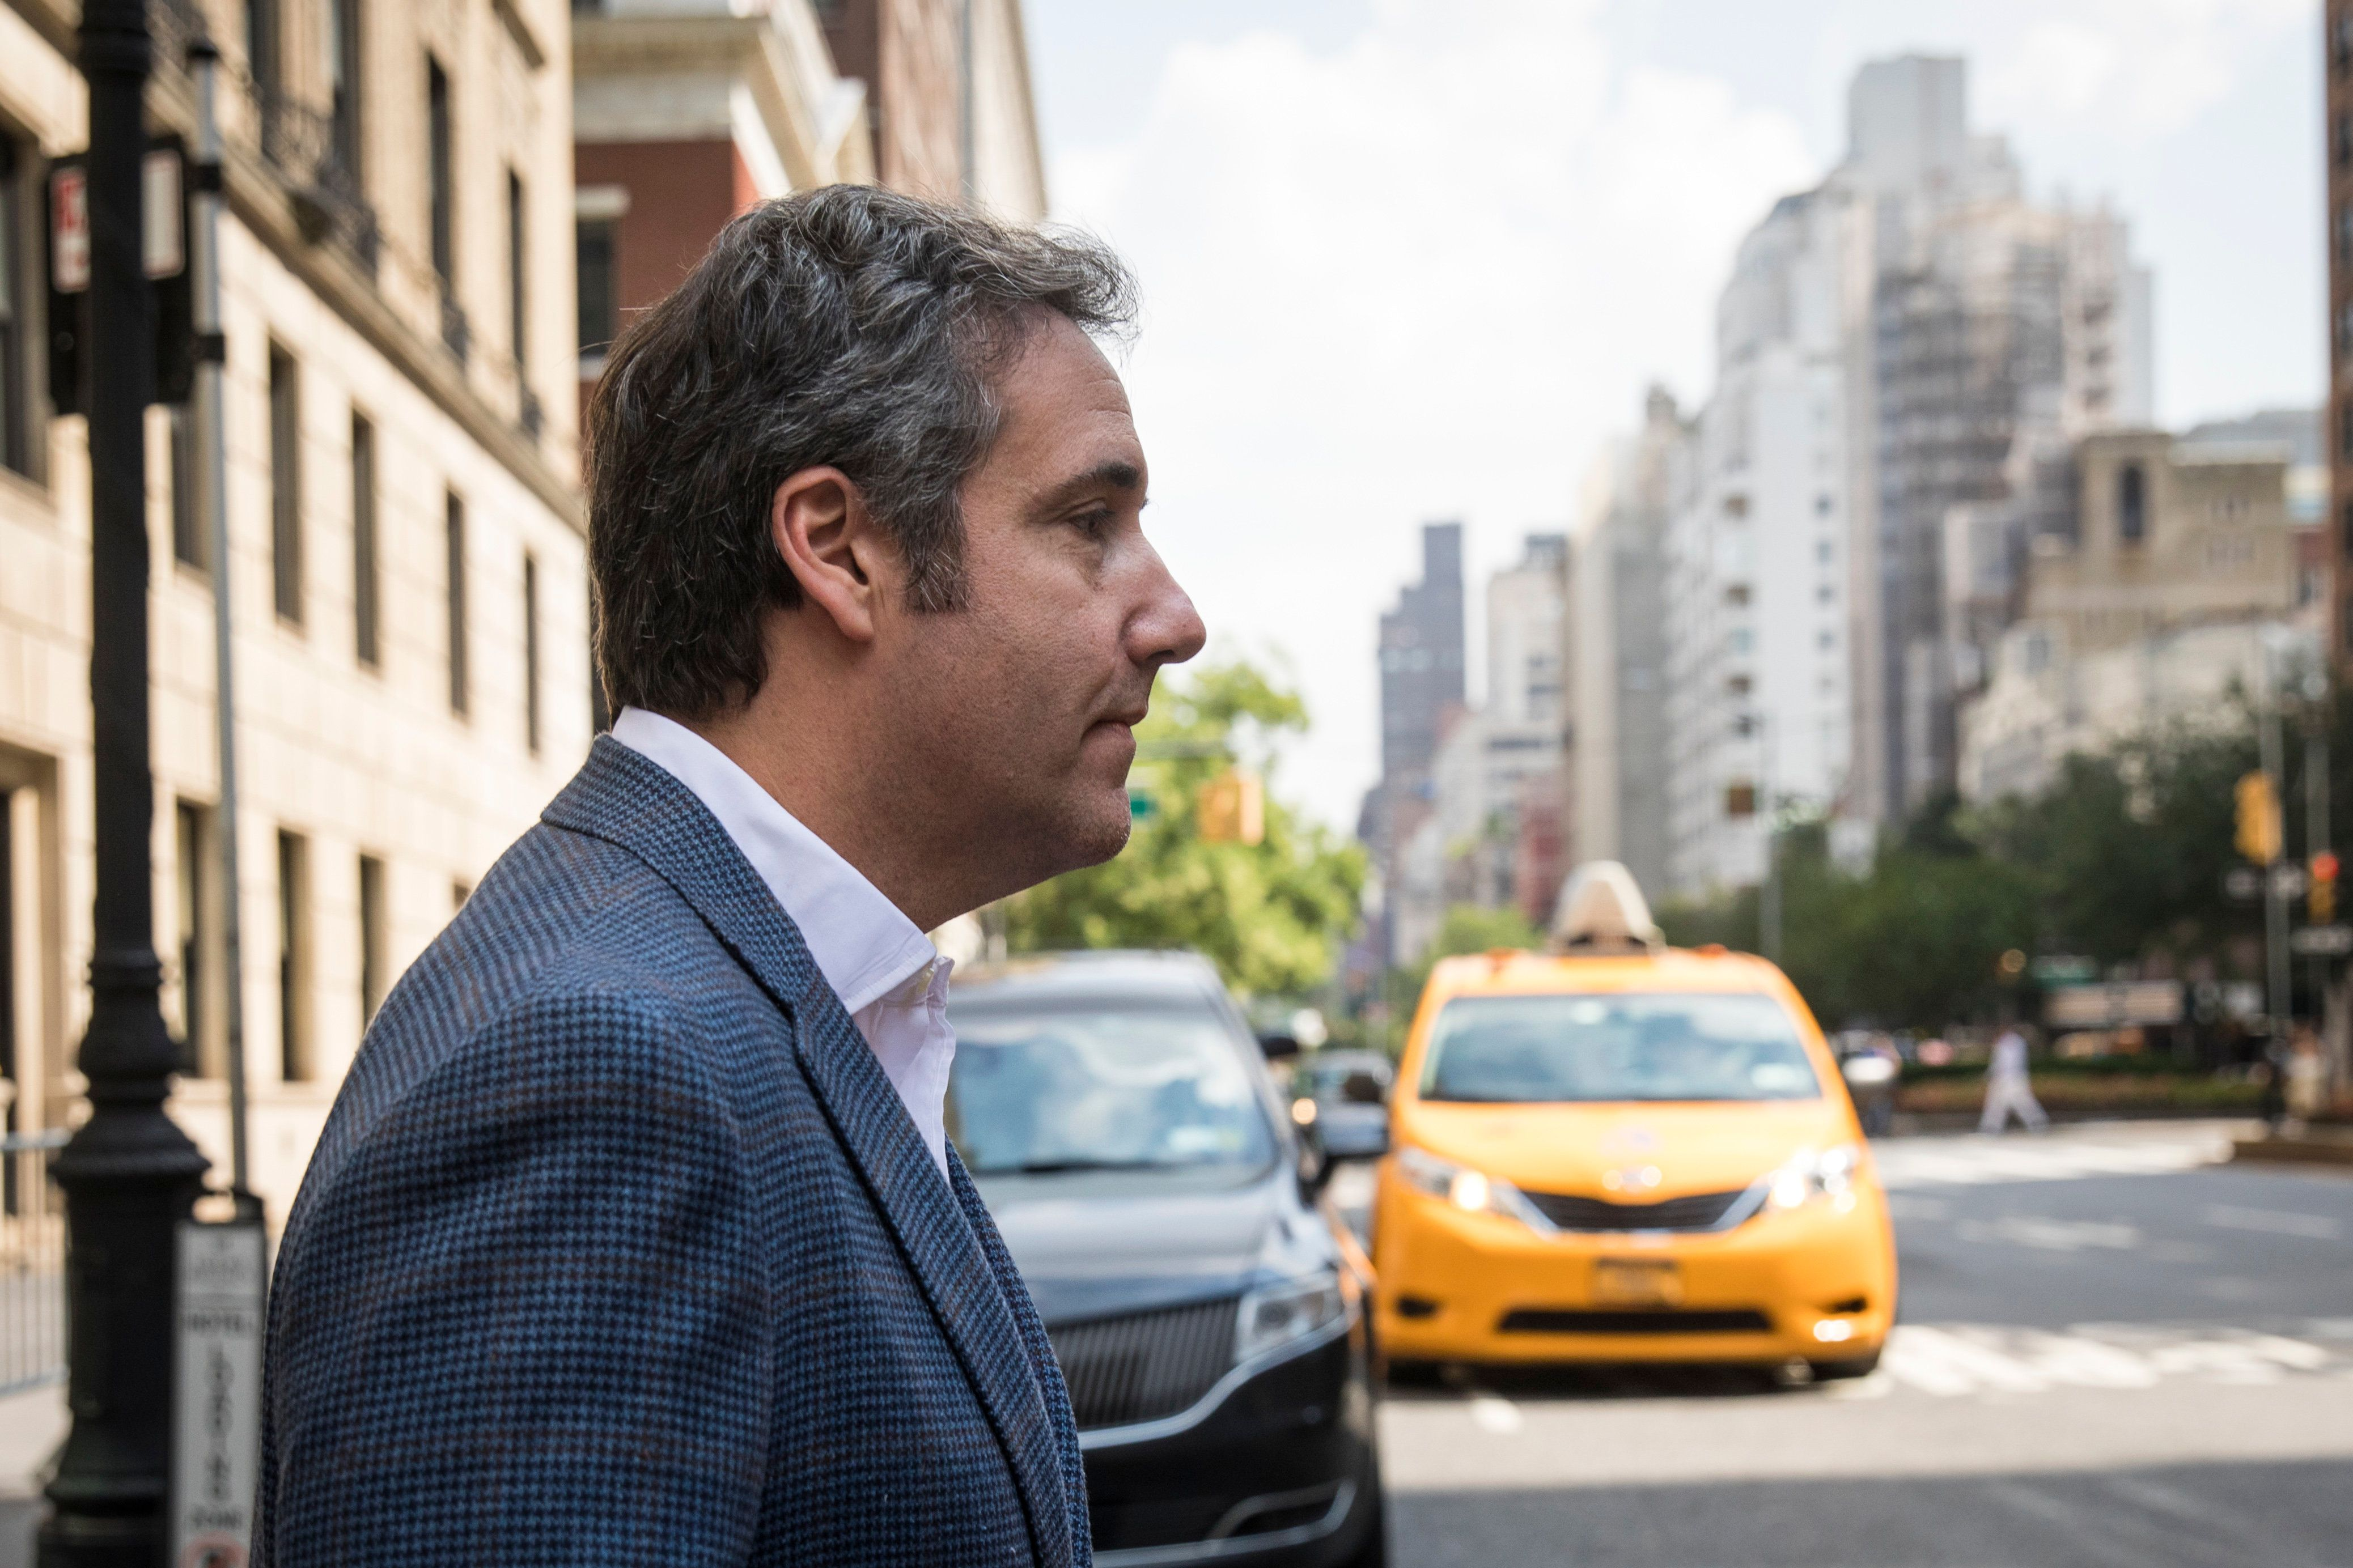 NEW YORK, NY - JULY 27:  Michael Cohen, former personal attorney for U.S. President Donald Trump, exits the Loews Regency hotel and walks toward a taxi cab, July 27, 2018 in New York City. According to recent news reports, Cohen is prepared to tell special counsel Robert Mueller that then-candidate Trump knew about and approved the 2016 Trump Tower meeting between campaign officials and a Russian lawyer who promised dirt on Hillary Clinton. (Photo by Drew Angerer/Getty Images)